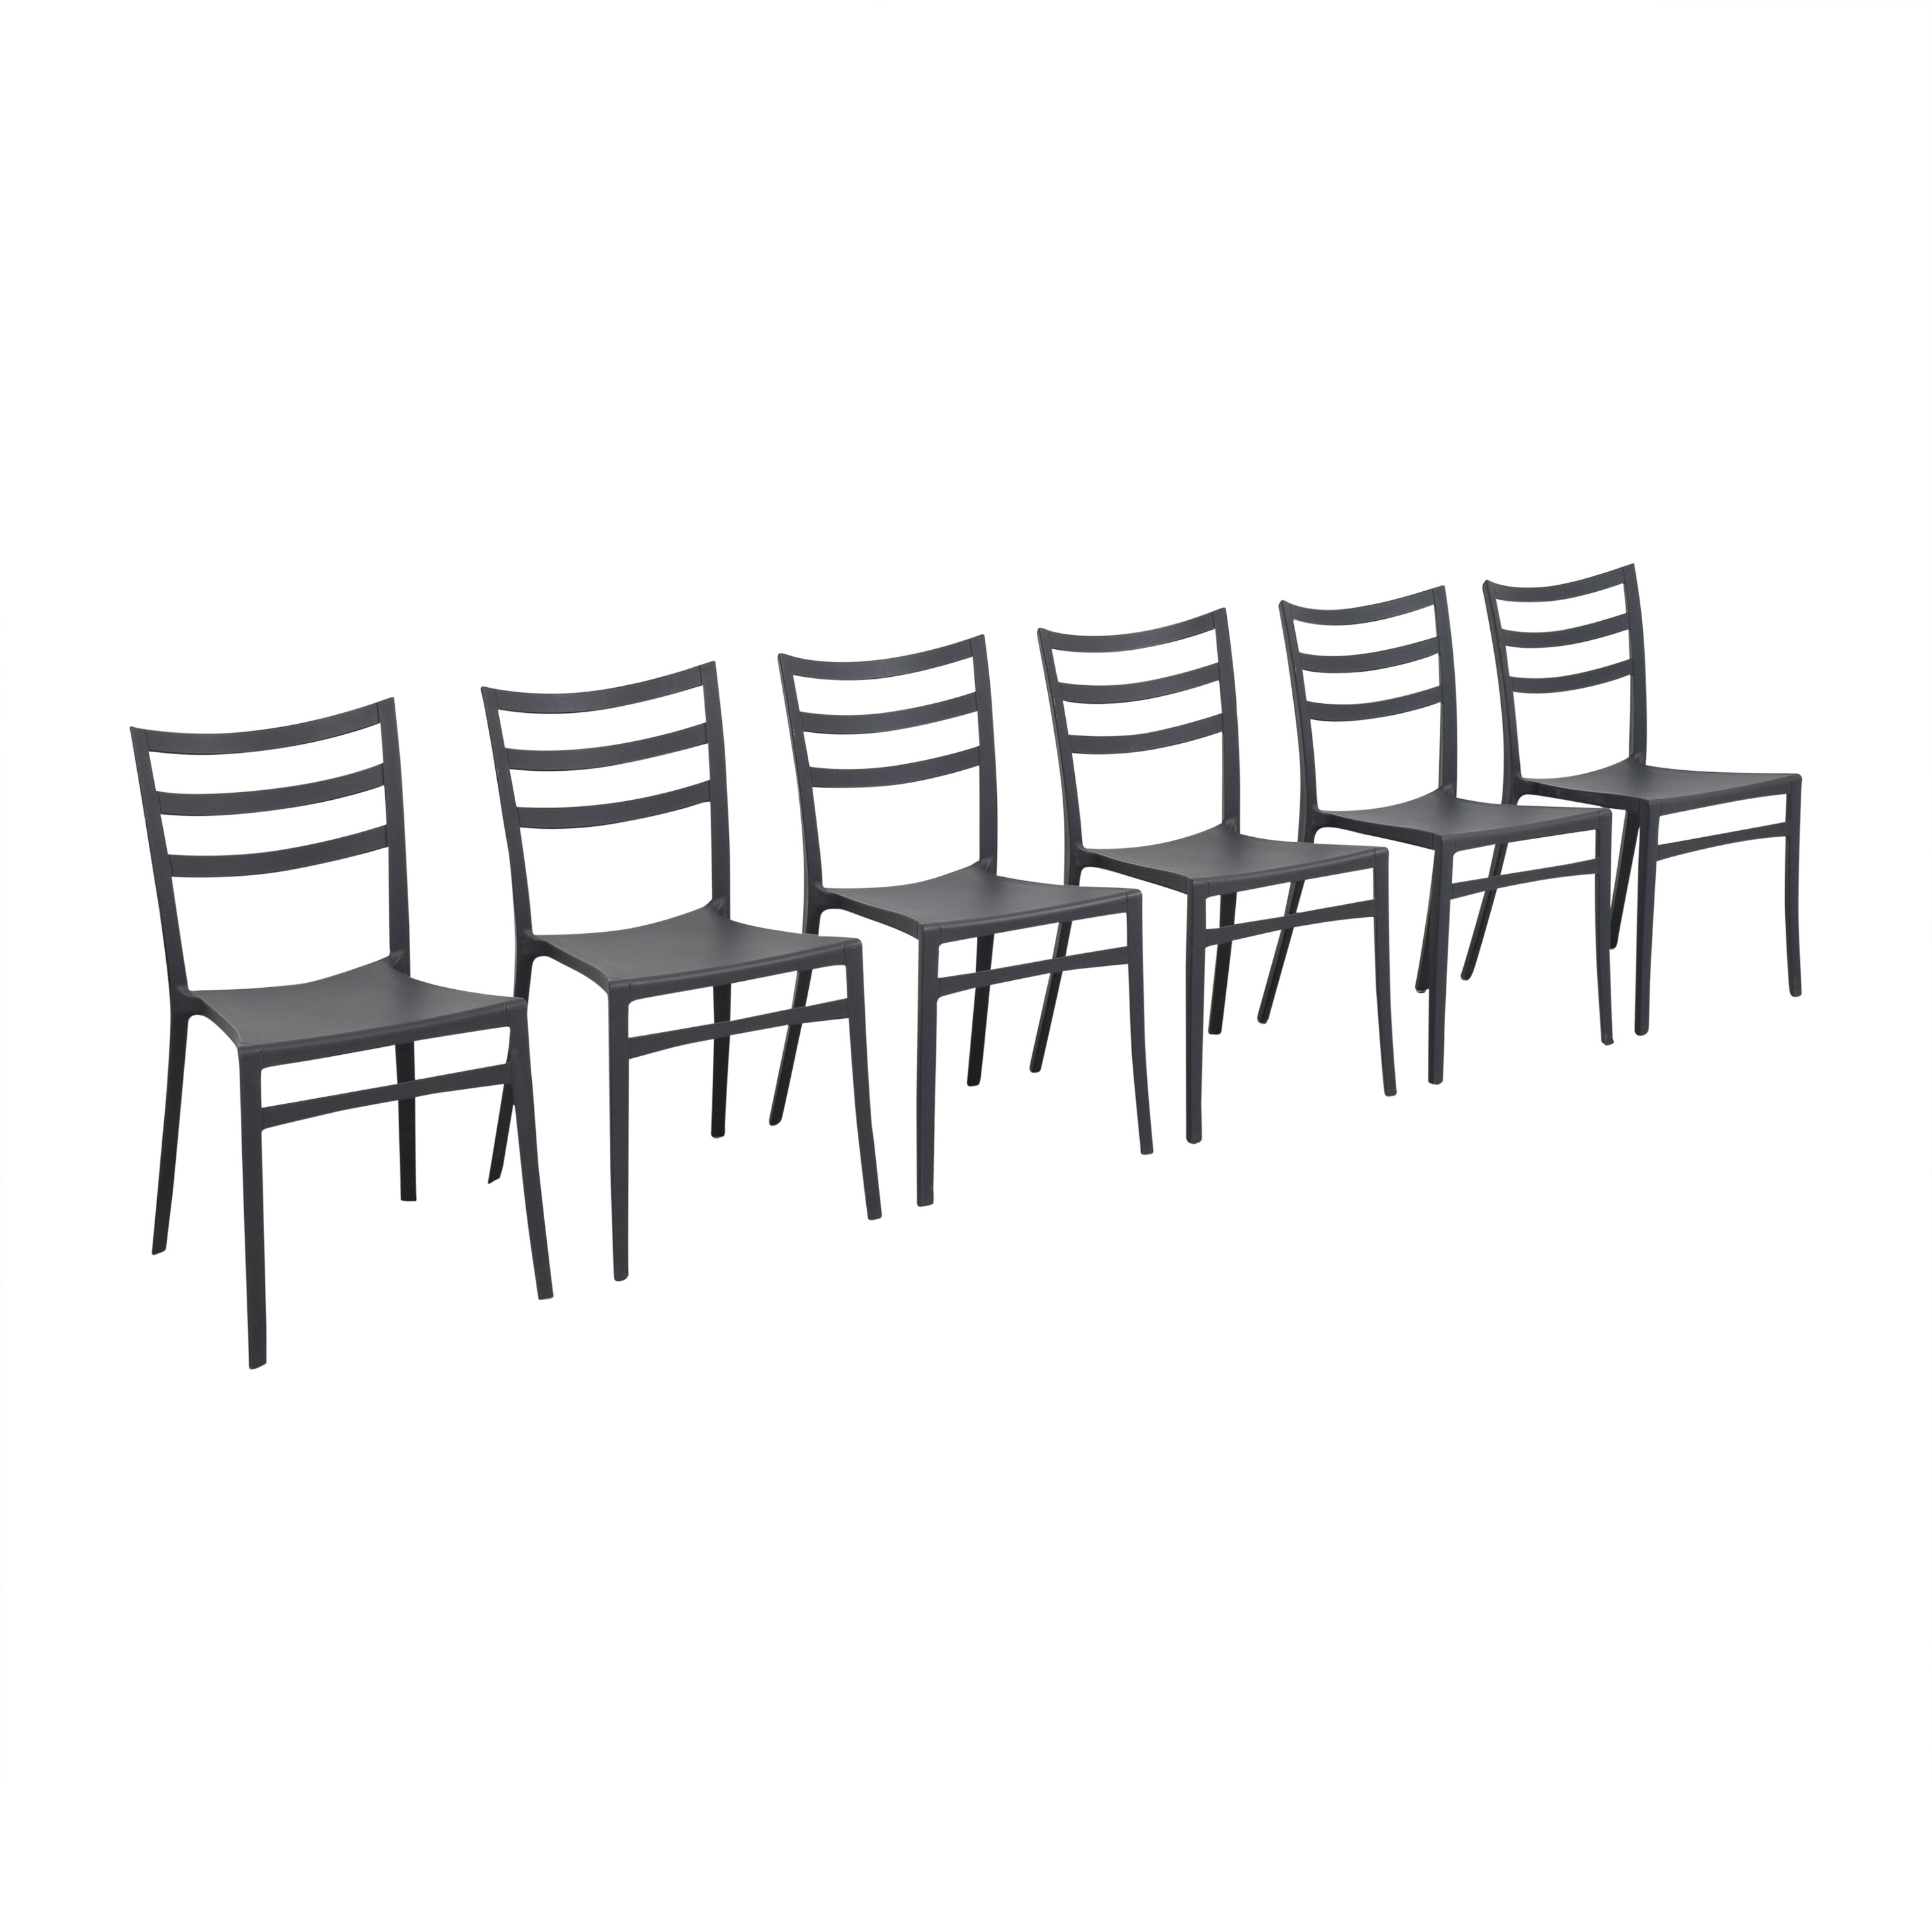 Room & Board Room & Board Sabrina Dining Side Chairs Dining Chairs